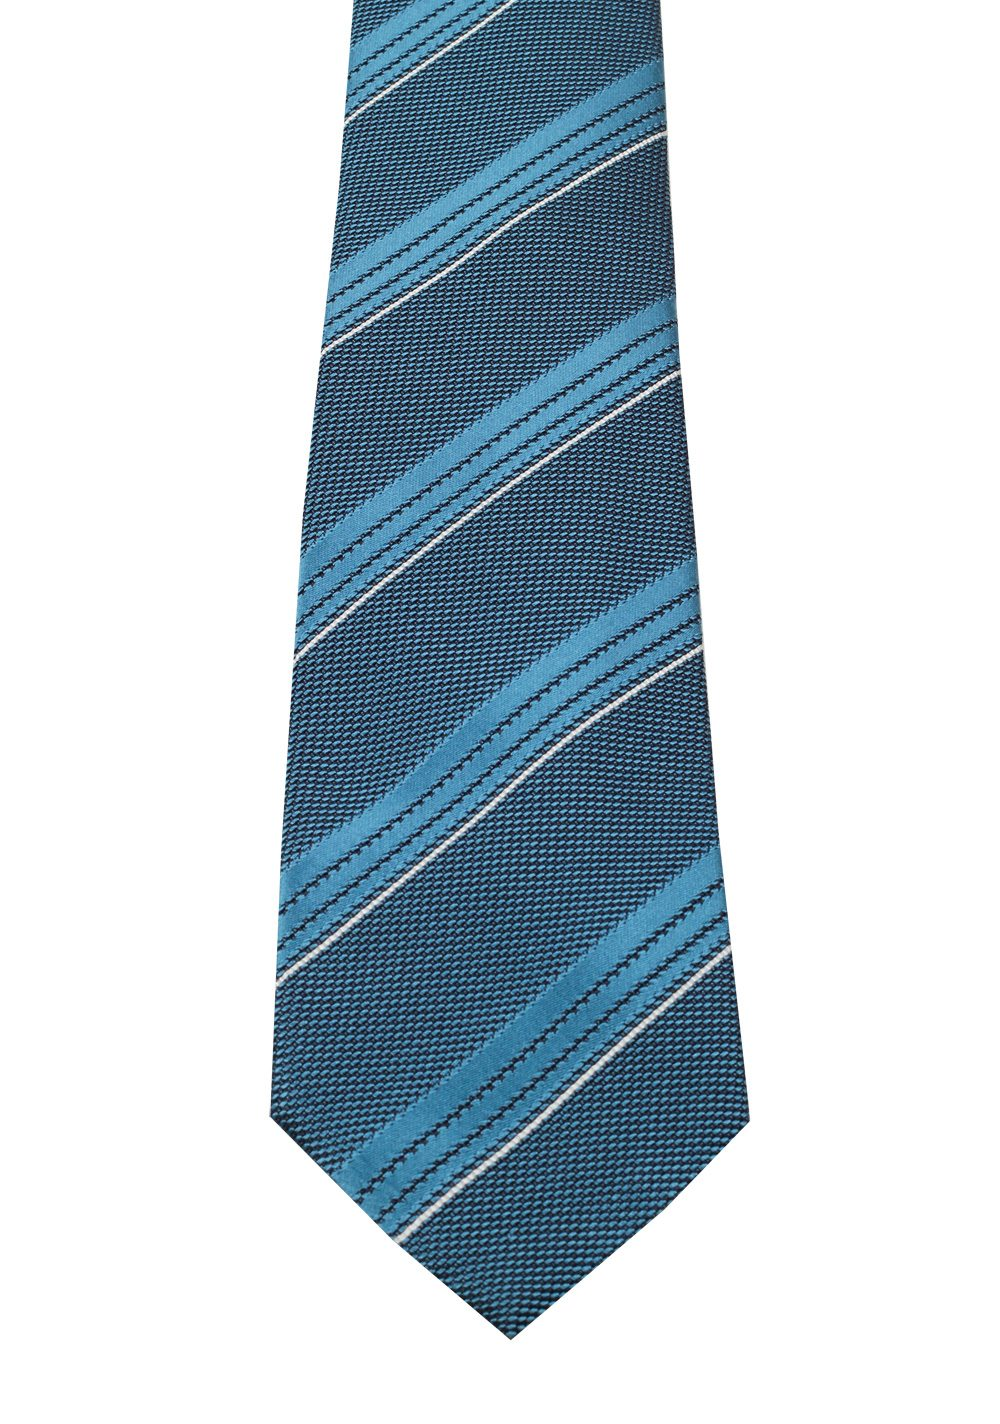 TOM FORD Striped Blue Tie In Silk | Costume Limité